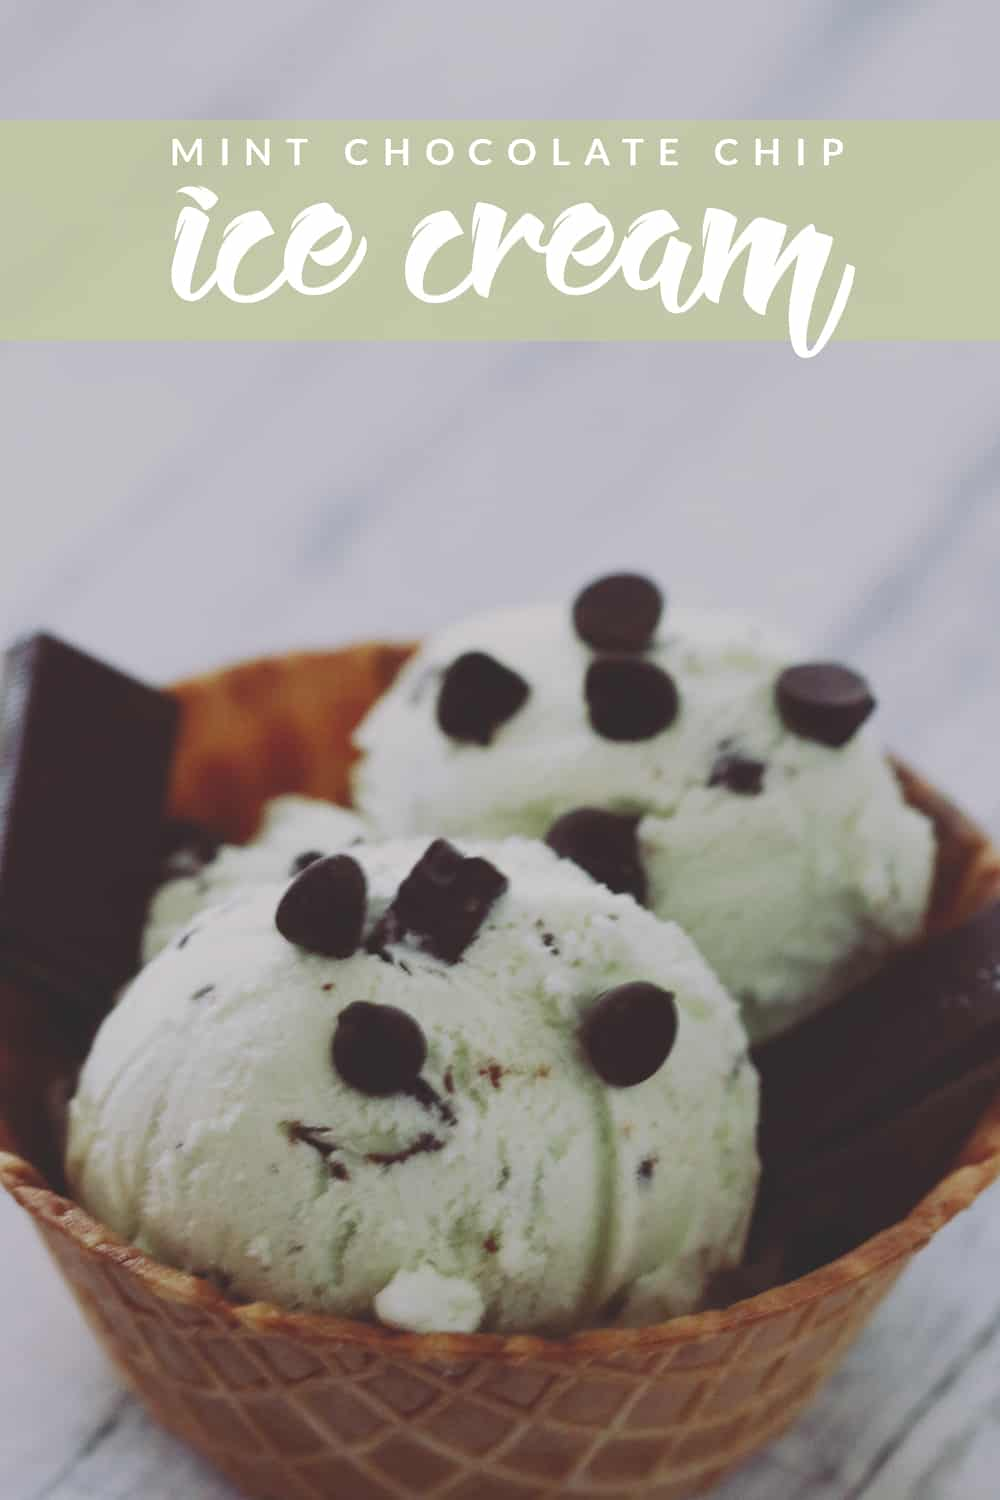 Mint Chocolate Chip Ice Cream just got better. This easy recipe is perfect to make at home and just the right amount of mint and chocolate!